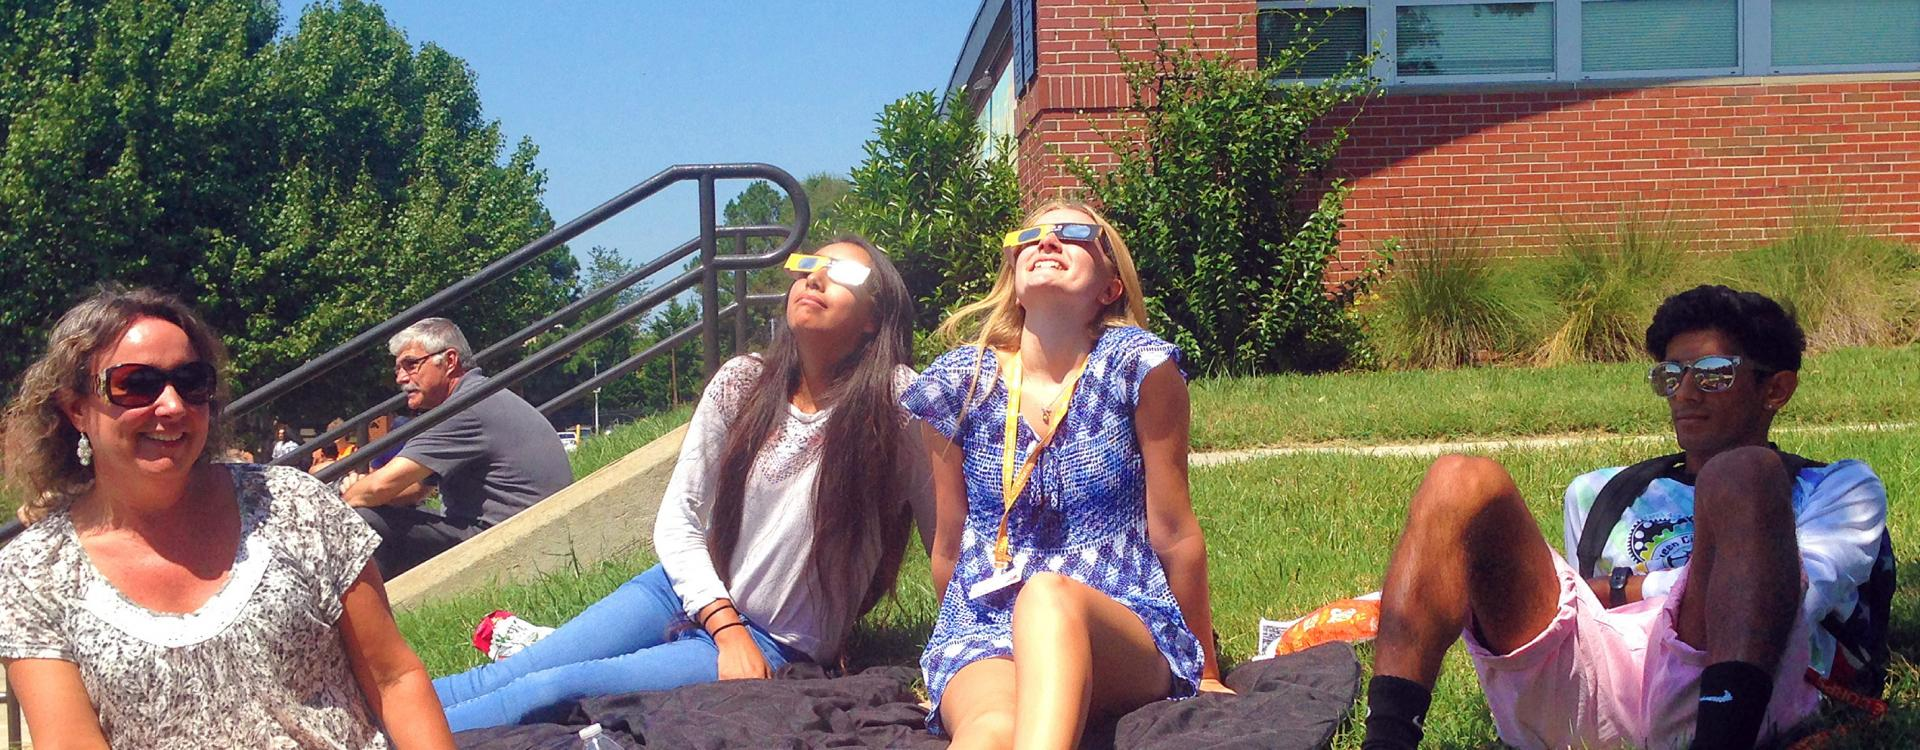 students wearing protective glasses sit on campus watching solar eclipse